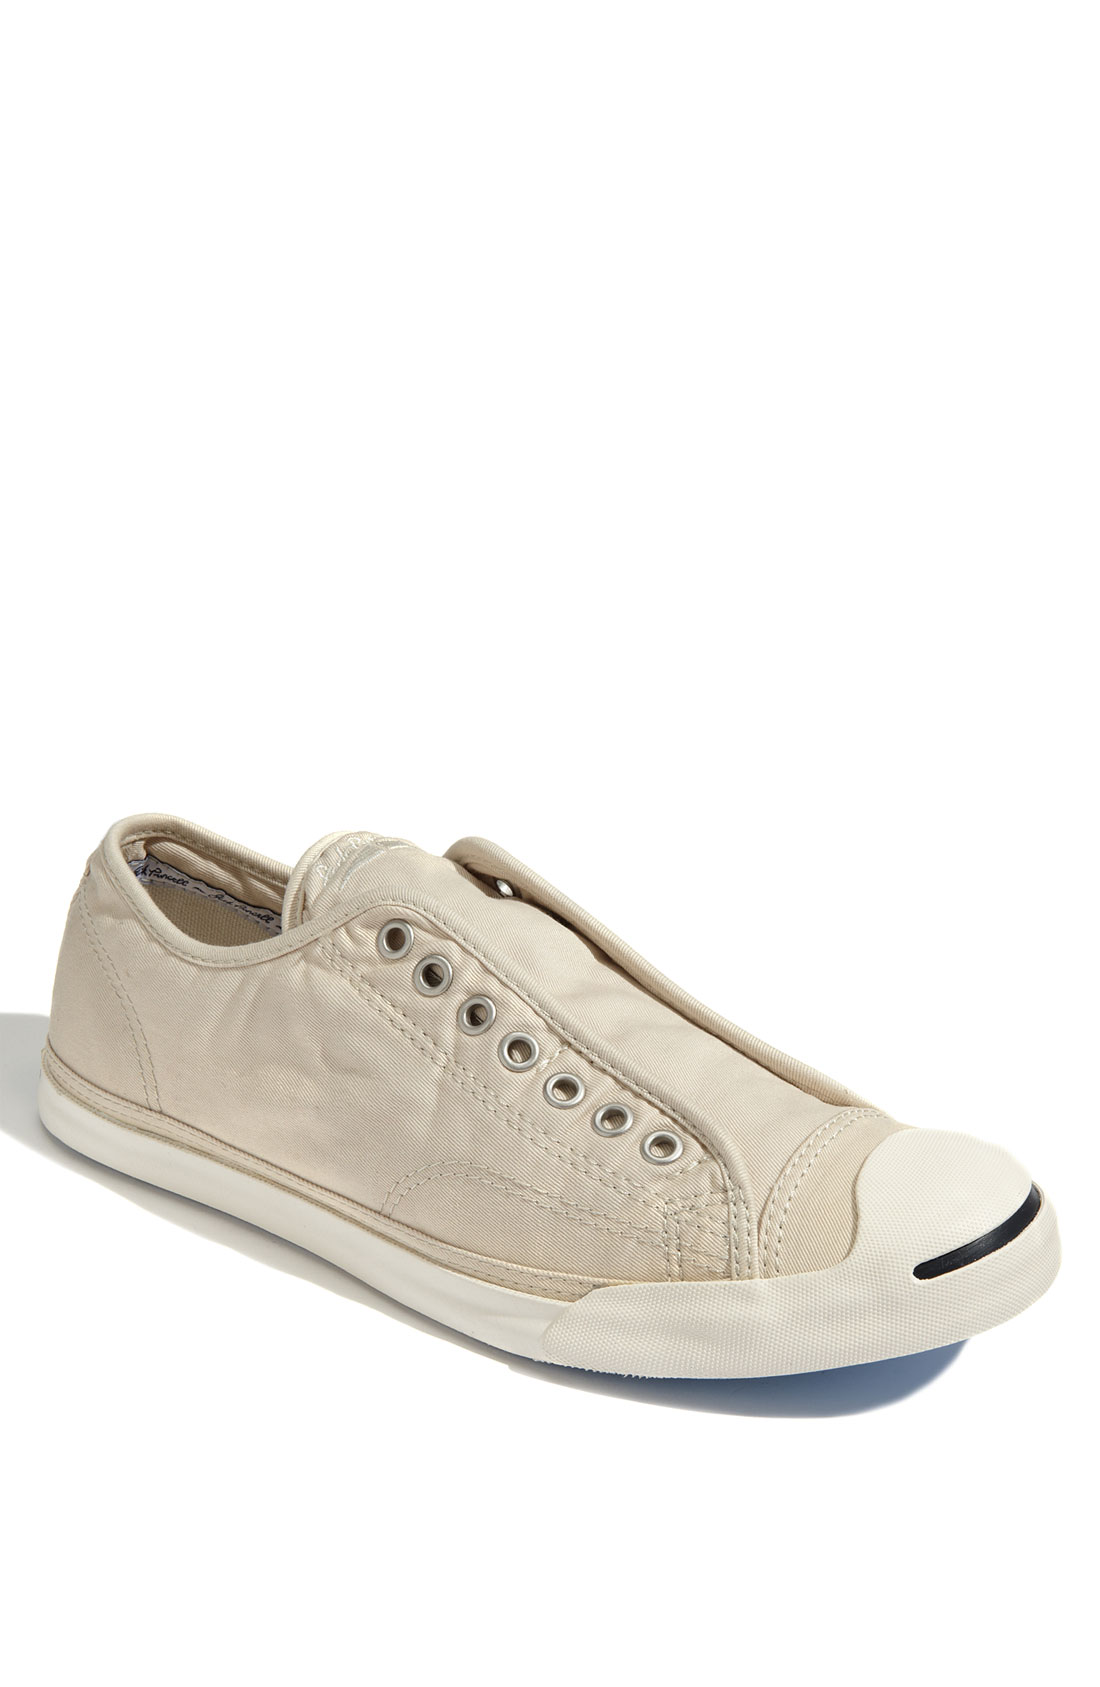 a669d715051 Converse Jack Purcell Lp Slip-on Sneaker (men) in Beige .